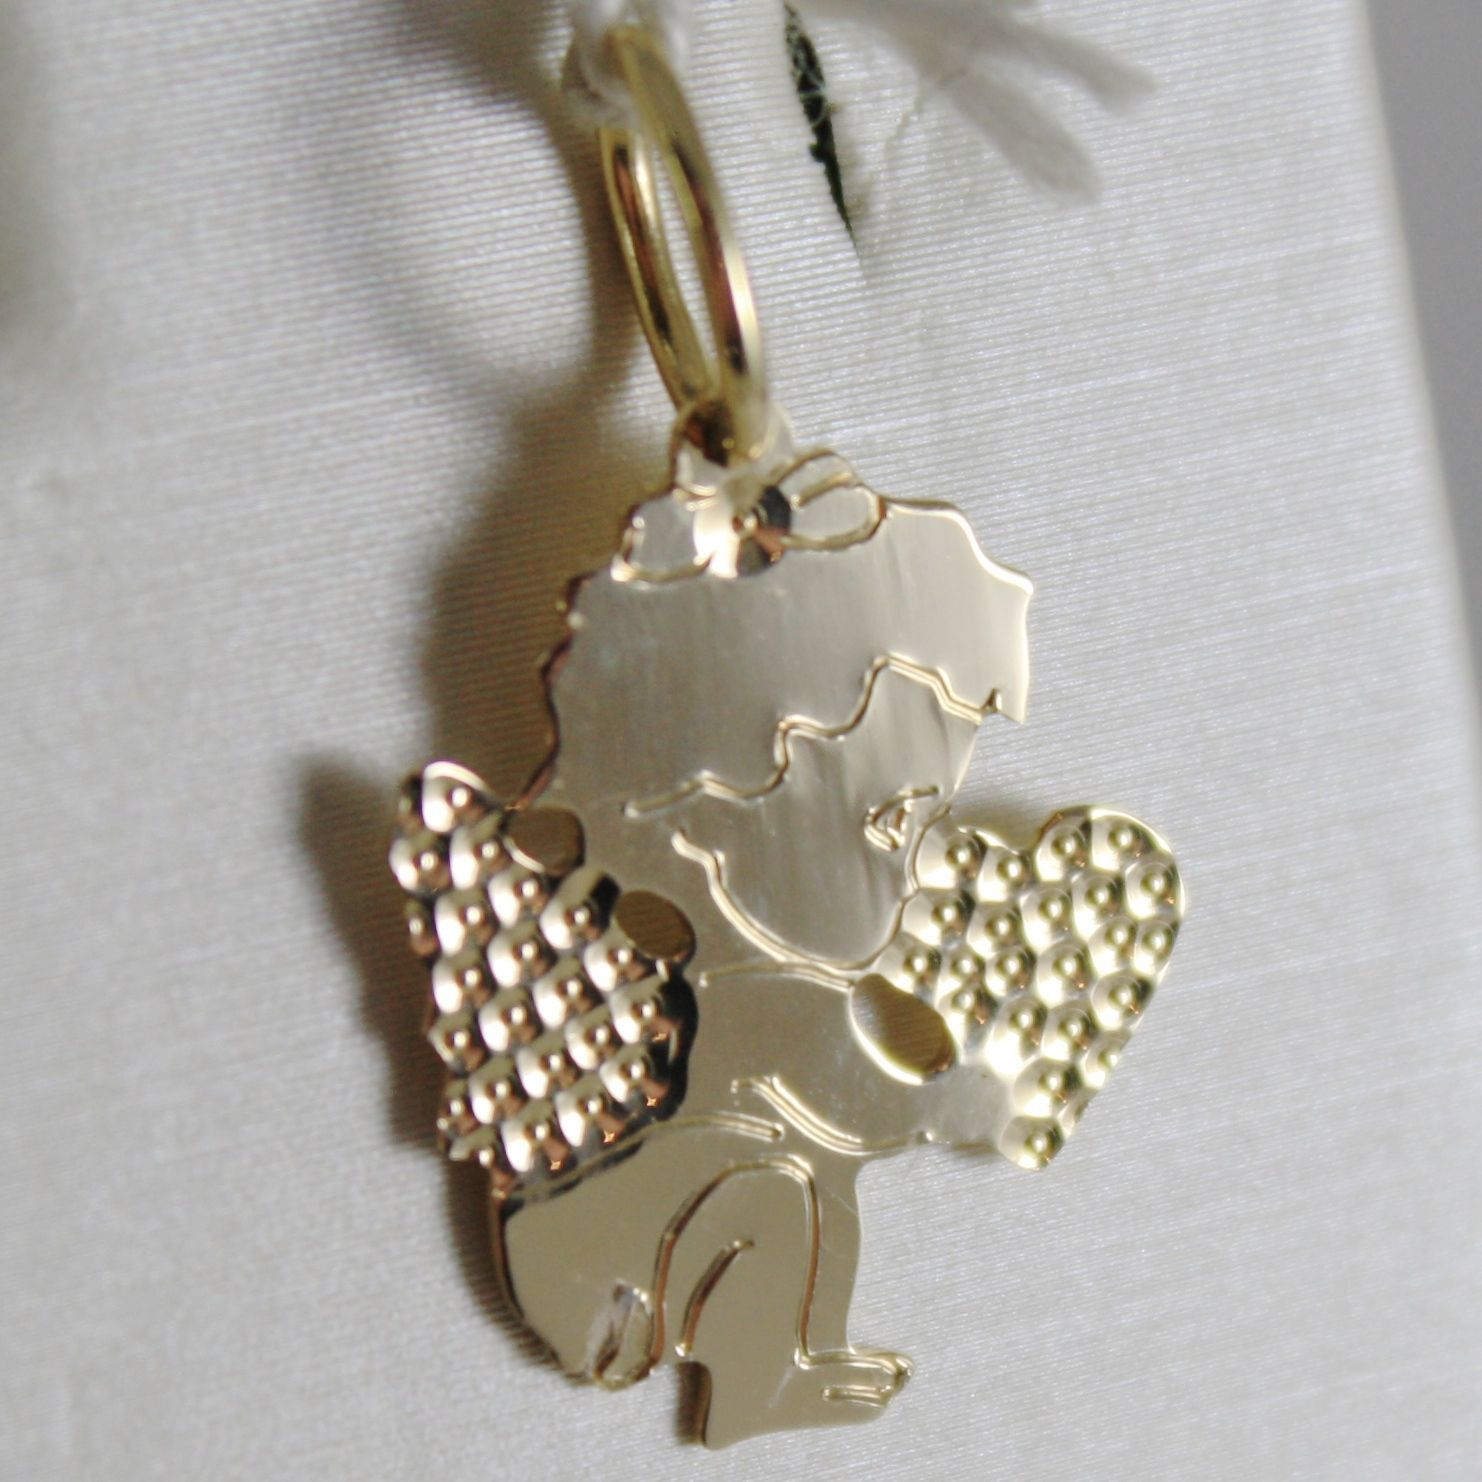 SOLID 18K YELLOW GOLD PENDANT FLAT GUARDIAN ANGEL HEART ENGRAVABLE MADE IN ITALY